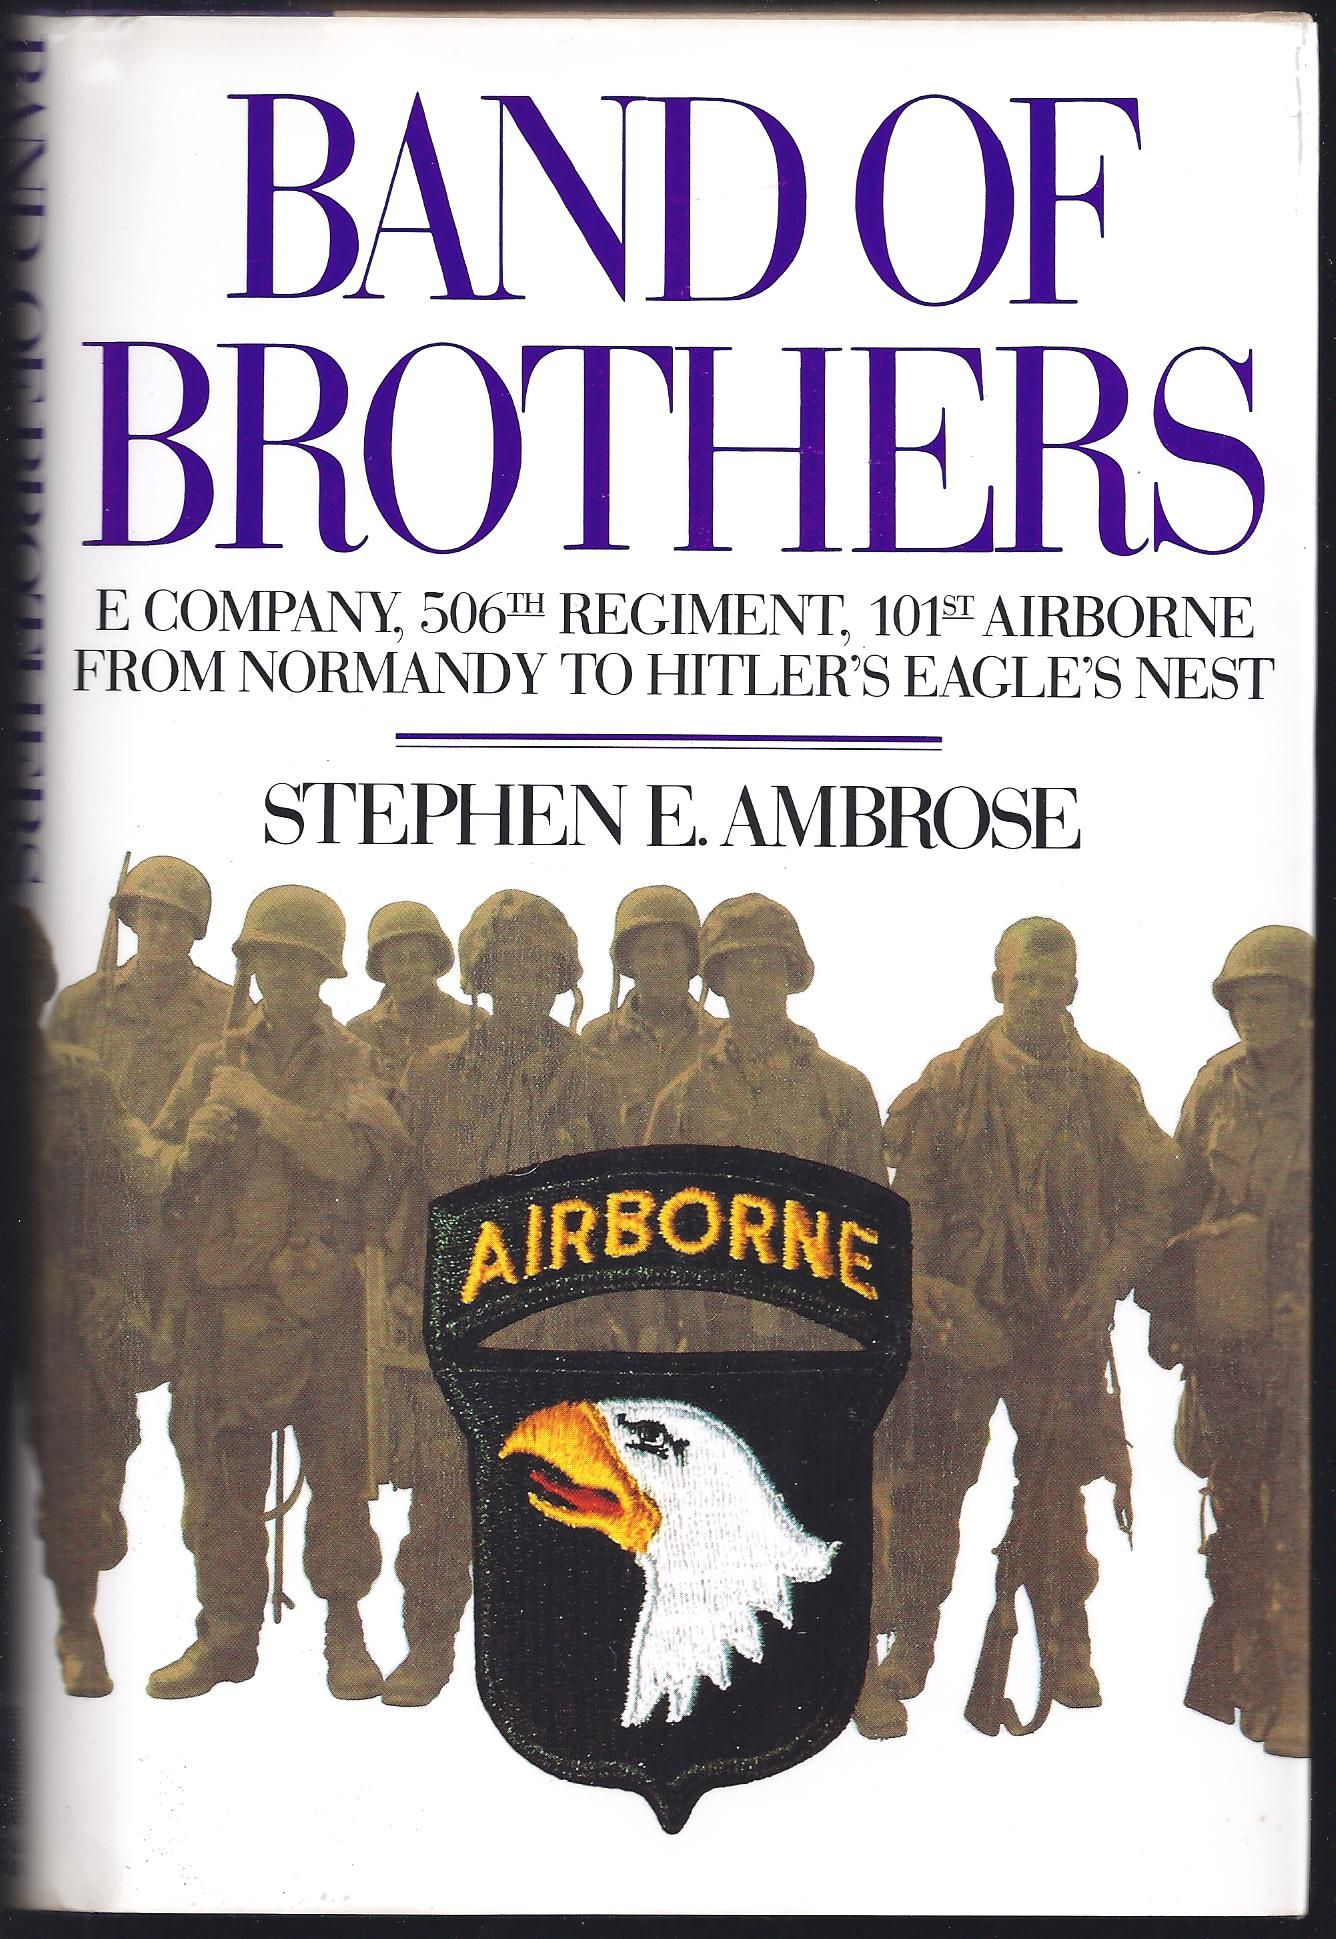 book report band of brothers A band of brothers free essay, term paper and book report band of brothers iauthors background stephen ambrose was born in 1936 and grew up in whitewater, wisconsin, a small town where his father was the md.